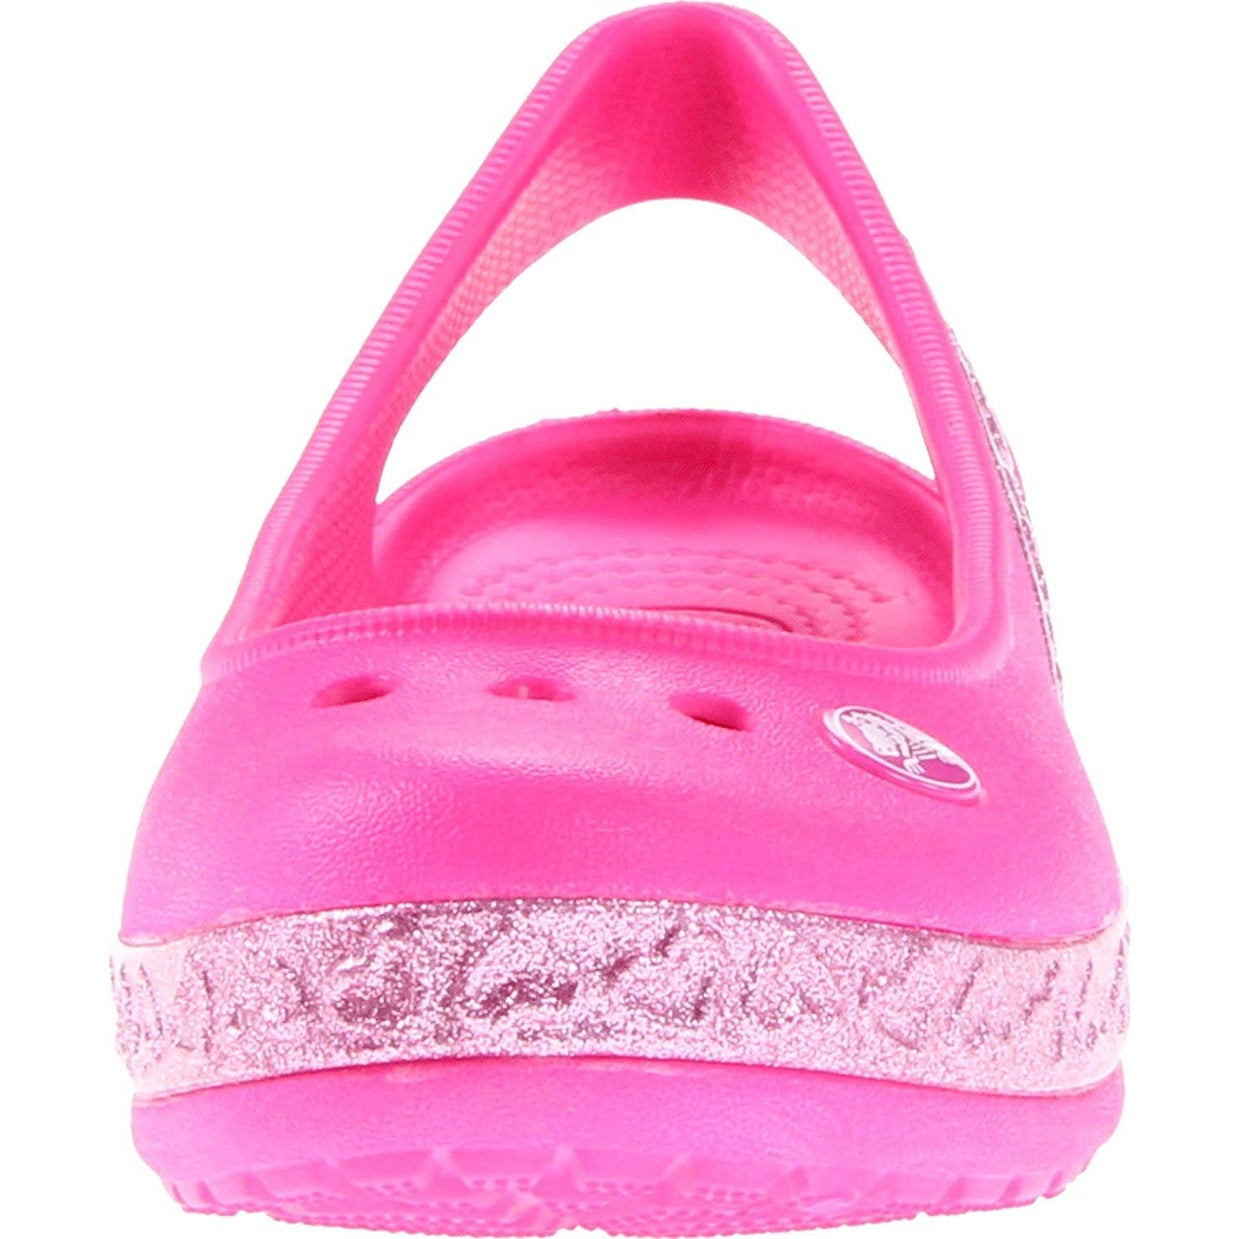 8a42a86ace71 Shop Crocs Girls  Genna II Hearts Flat GS - Free Shipping On Orders Over   45 - Overstock - 25862123